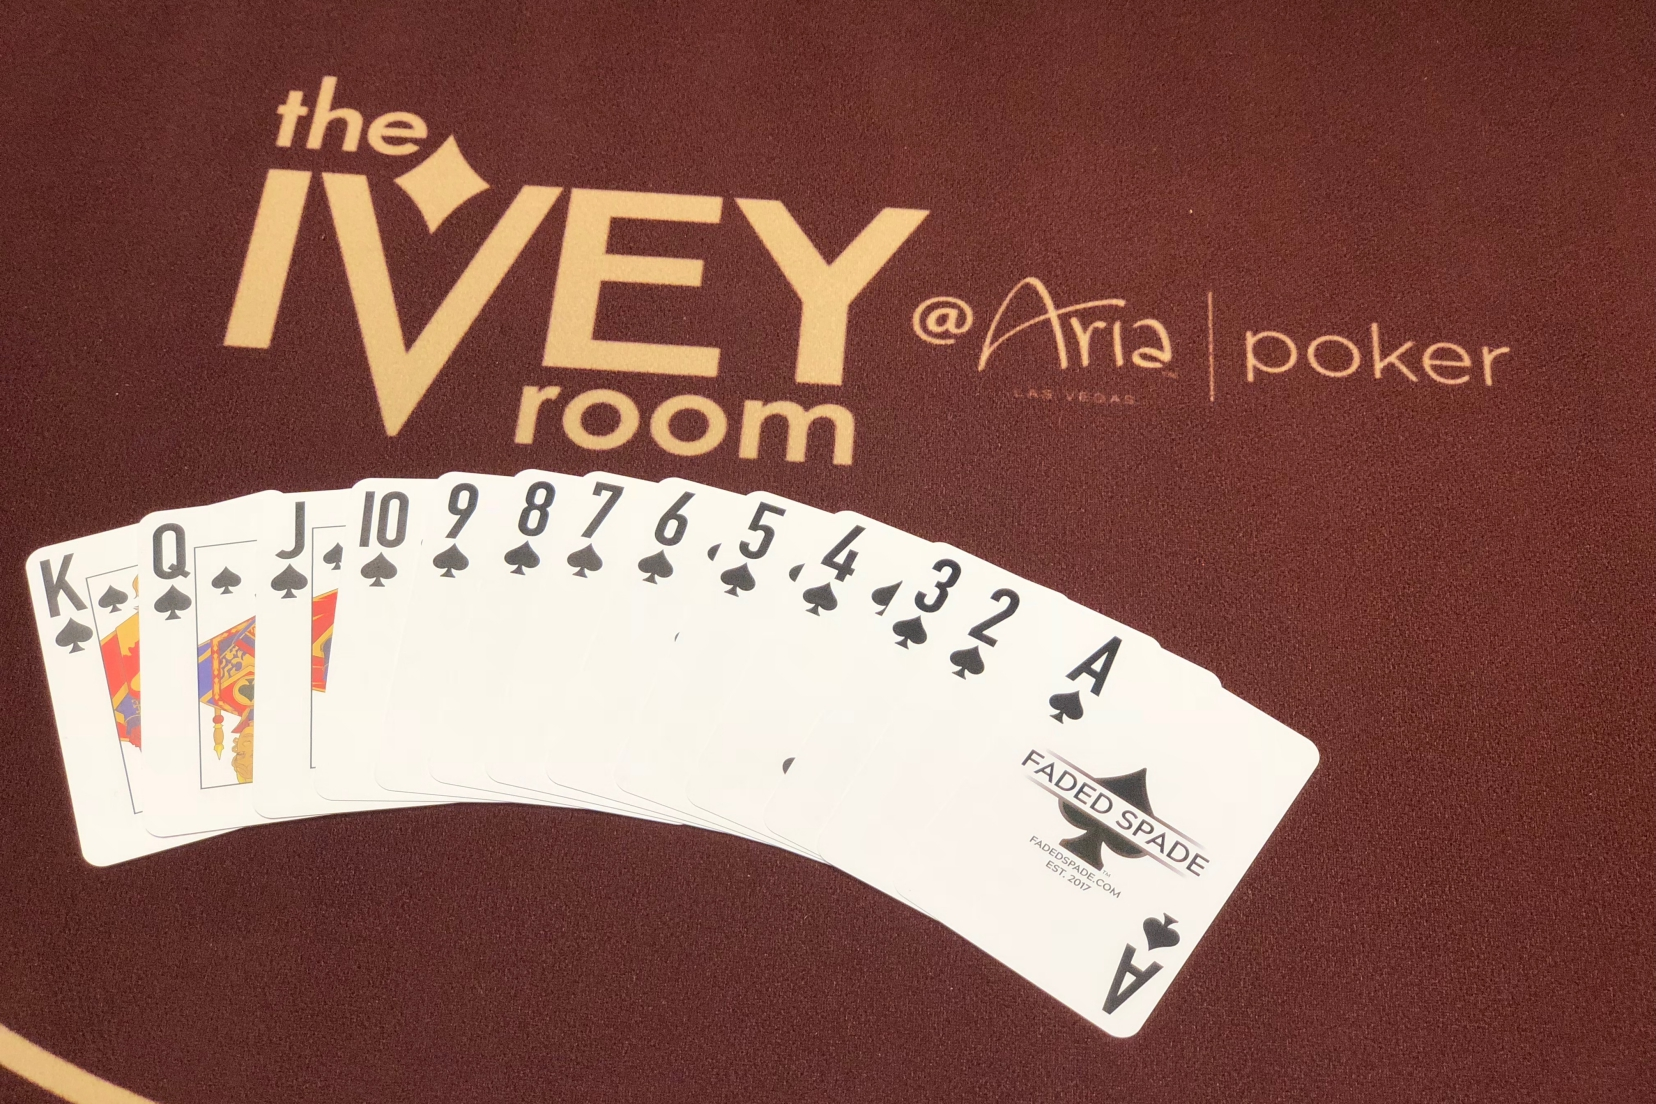 Faded Spade poker playing cards at the Ivey Room at Aria Poker Room